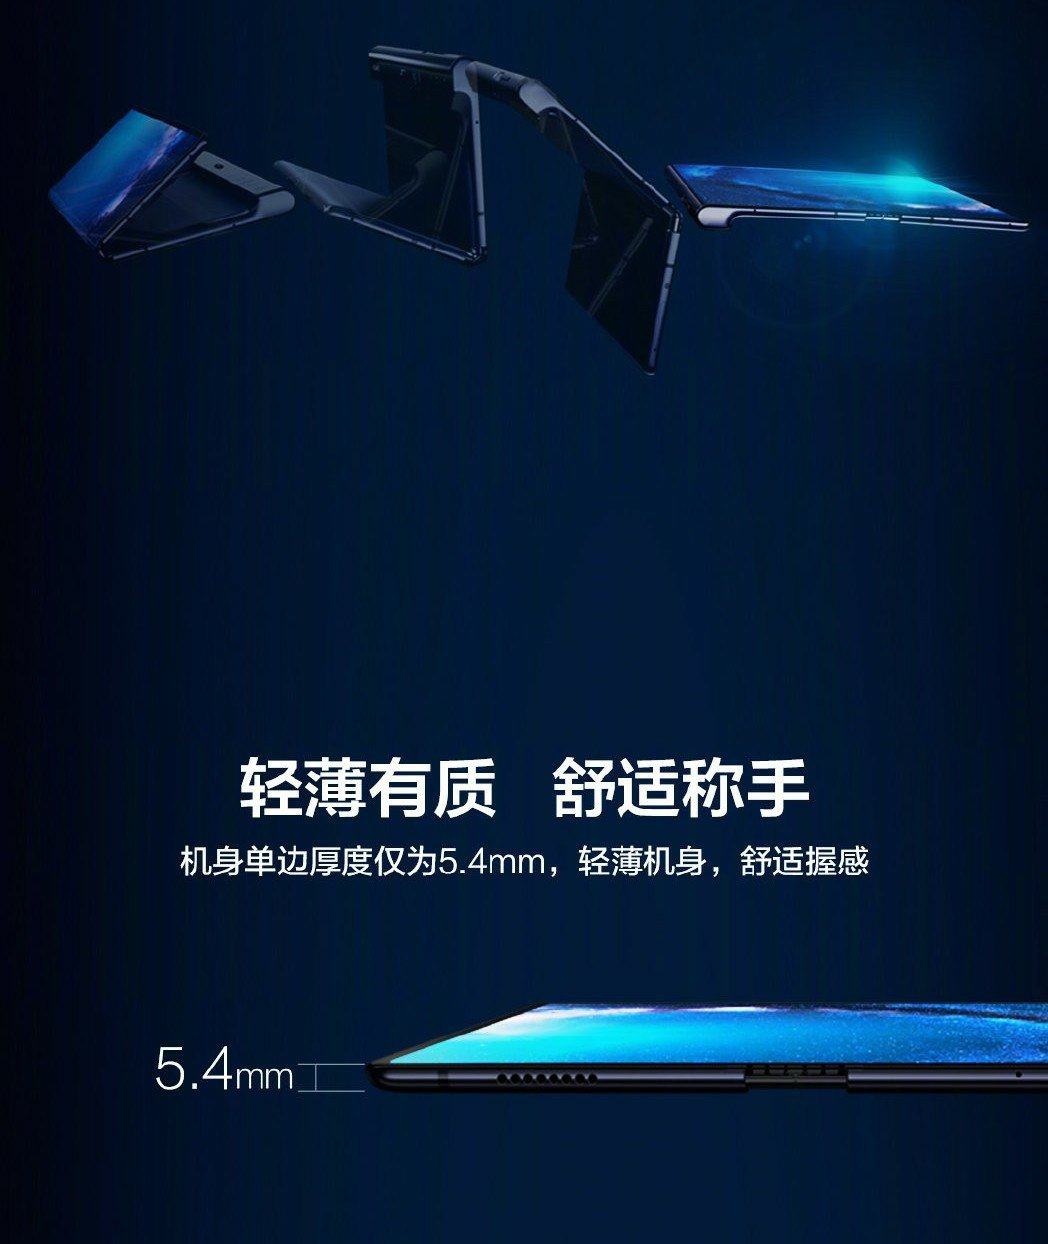 Huawei Mate X 5G Folding Phone- 8 Highlights - A picture to